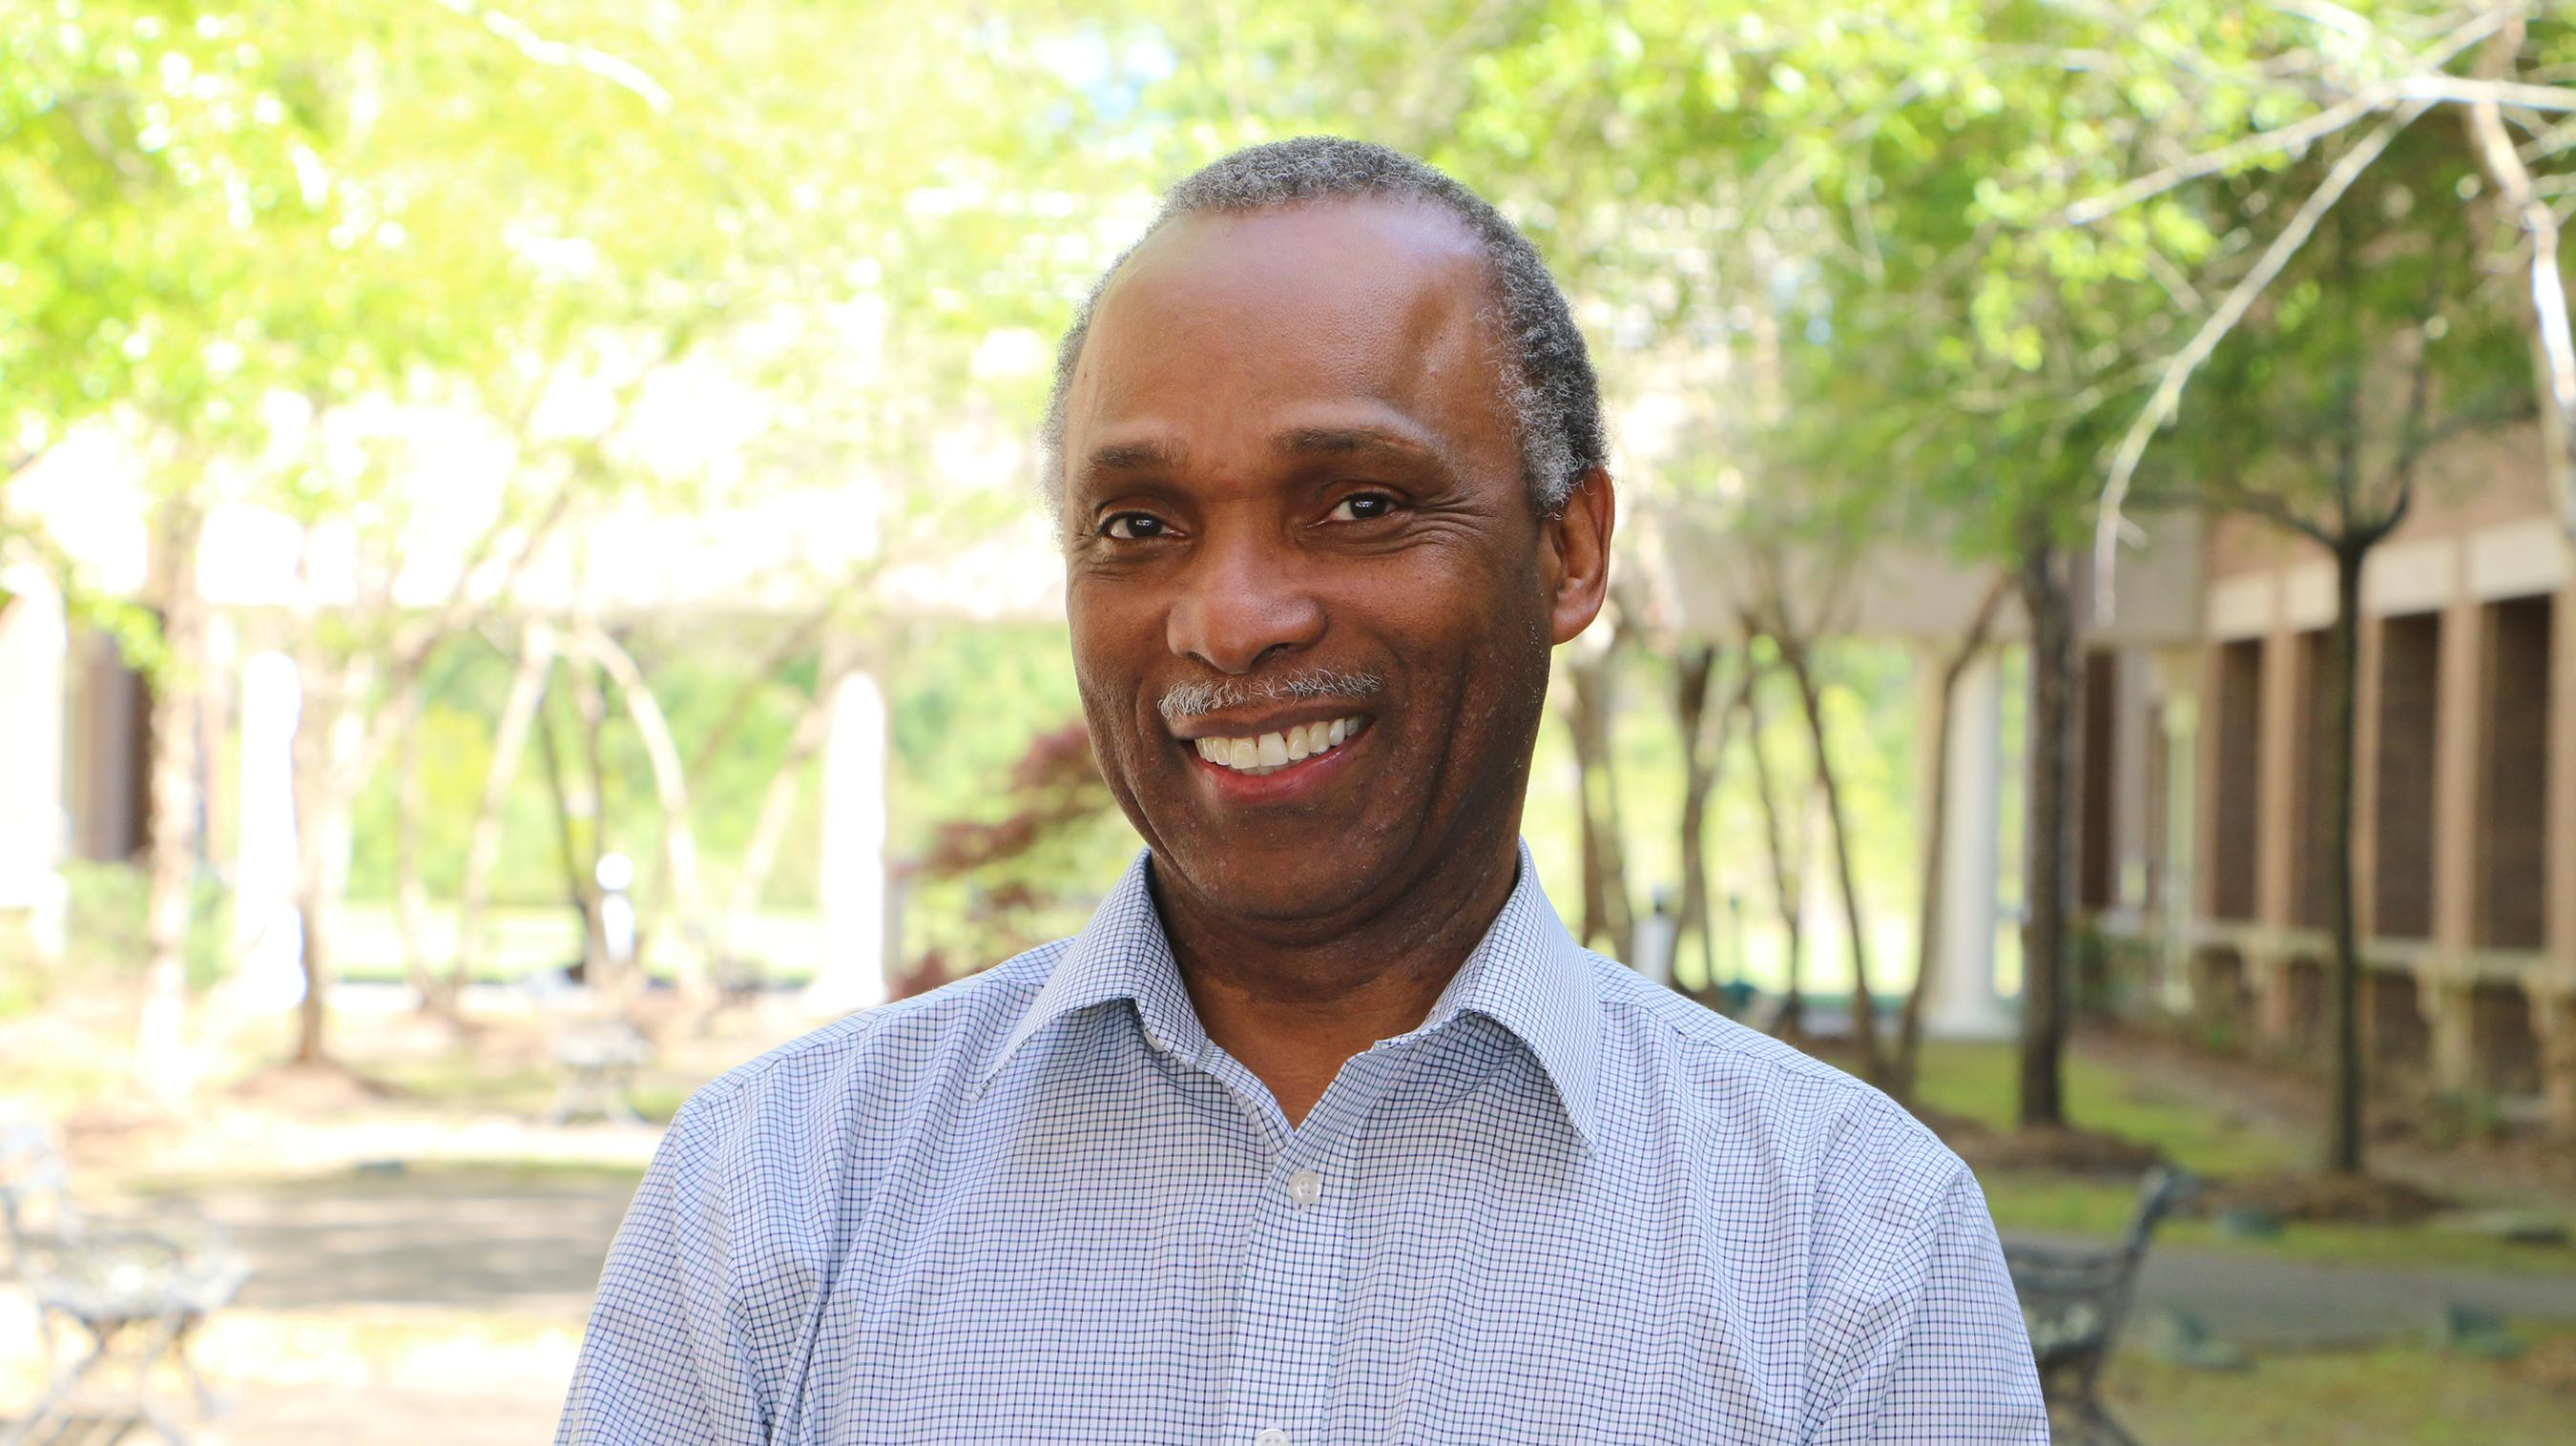 Alvin Simmons is in line to lead the world's largest entomological organization.